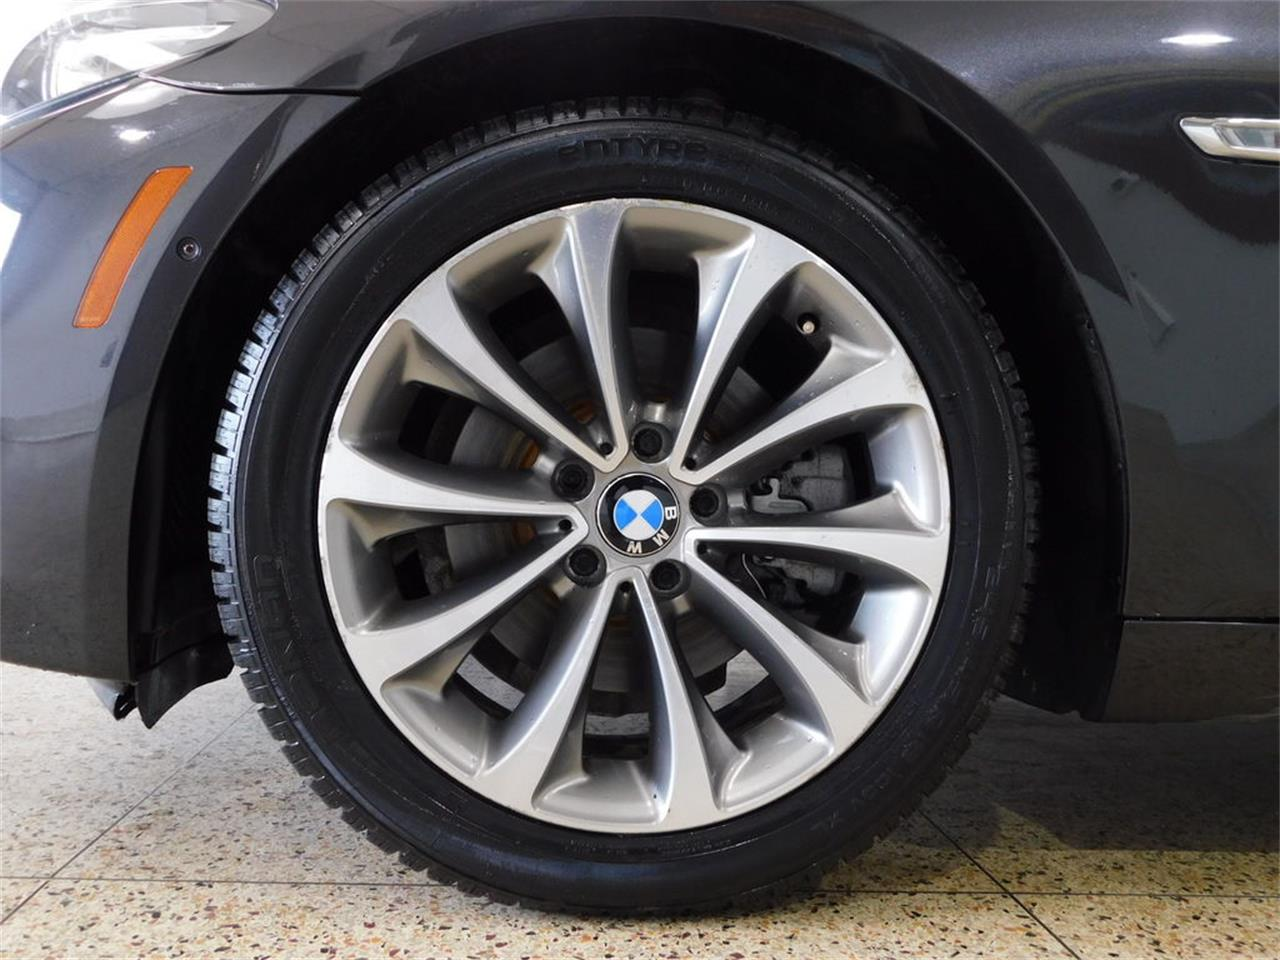 2016 BMW 5 Series (CC-1334837) for sale in Hamburg, New York